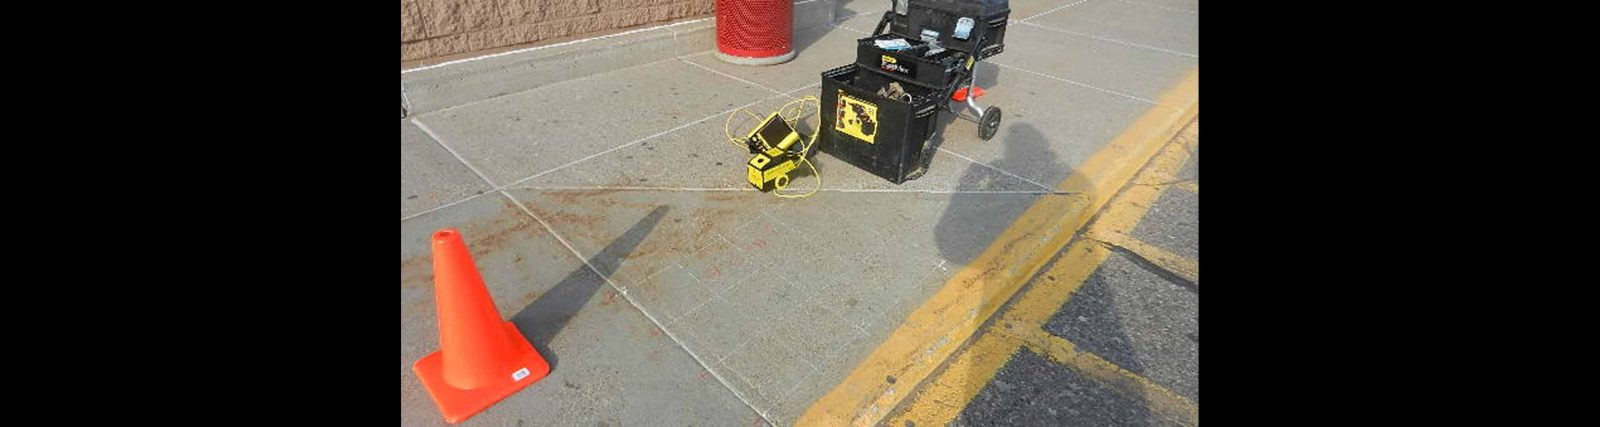 GPR Concrete Scanner for Imaging Concrete Like X-Ray